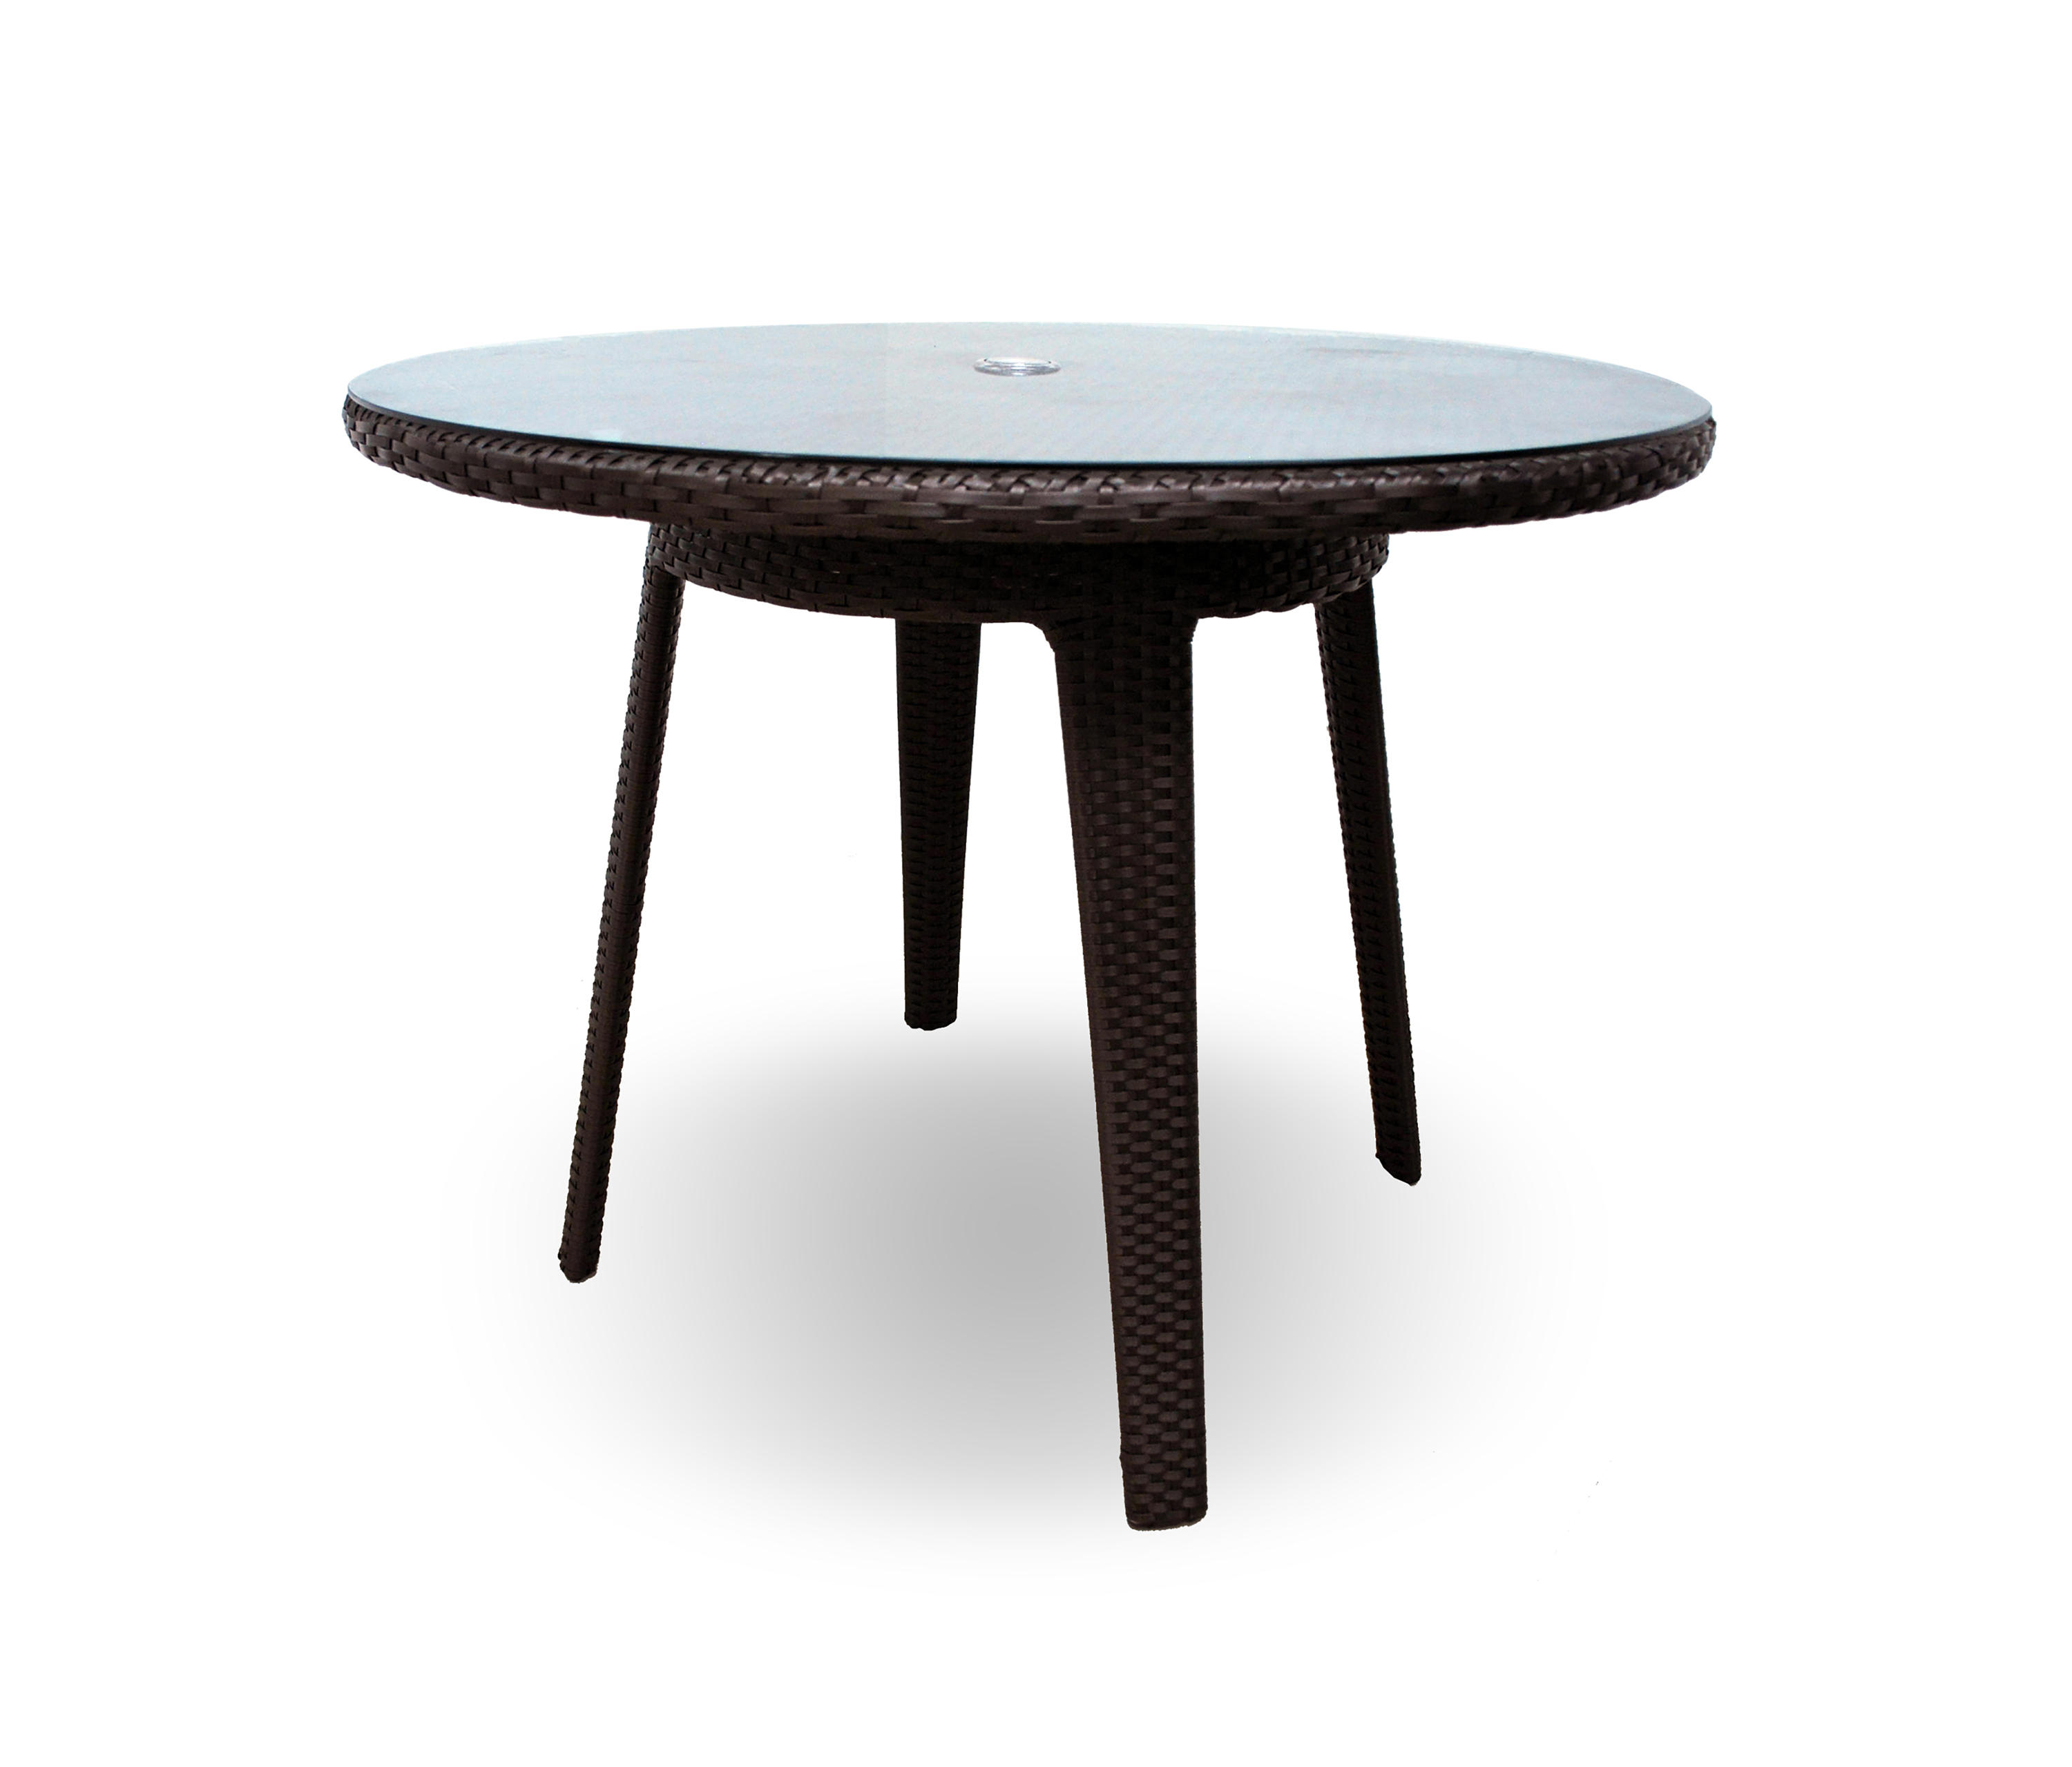 senna 40 round dining table with tempered glass top dining tables from kannoa architonic. Black Bedroom Furniture Sets. Home Design Ideas